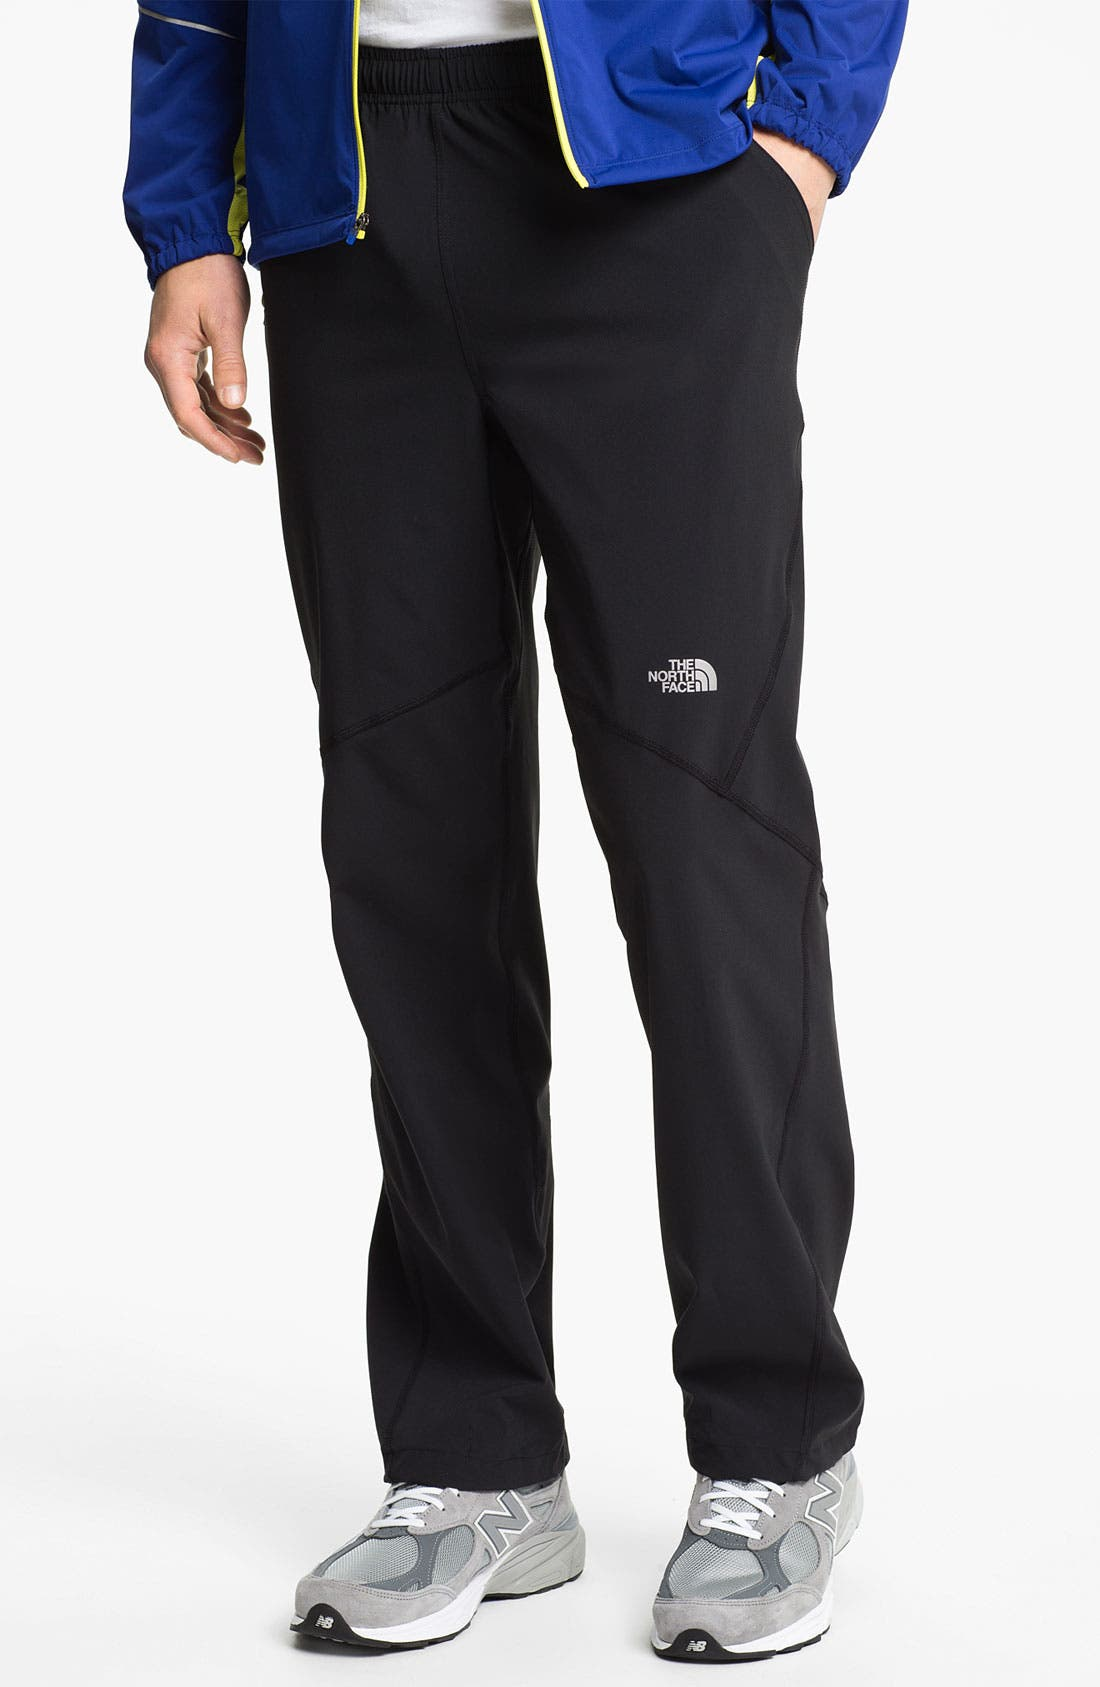 Alternate Image 1 Selected - The North Face 'Prolix' Track Pants